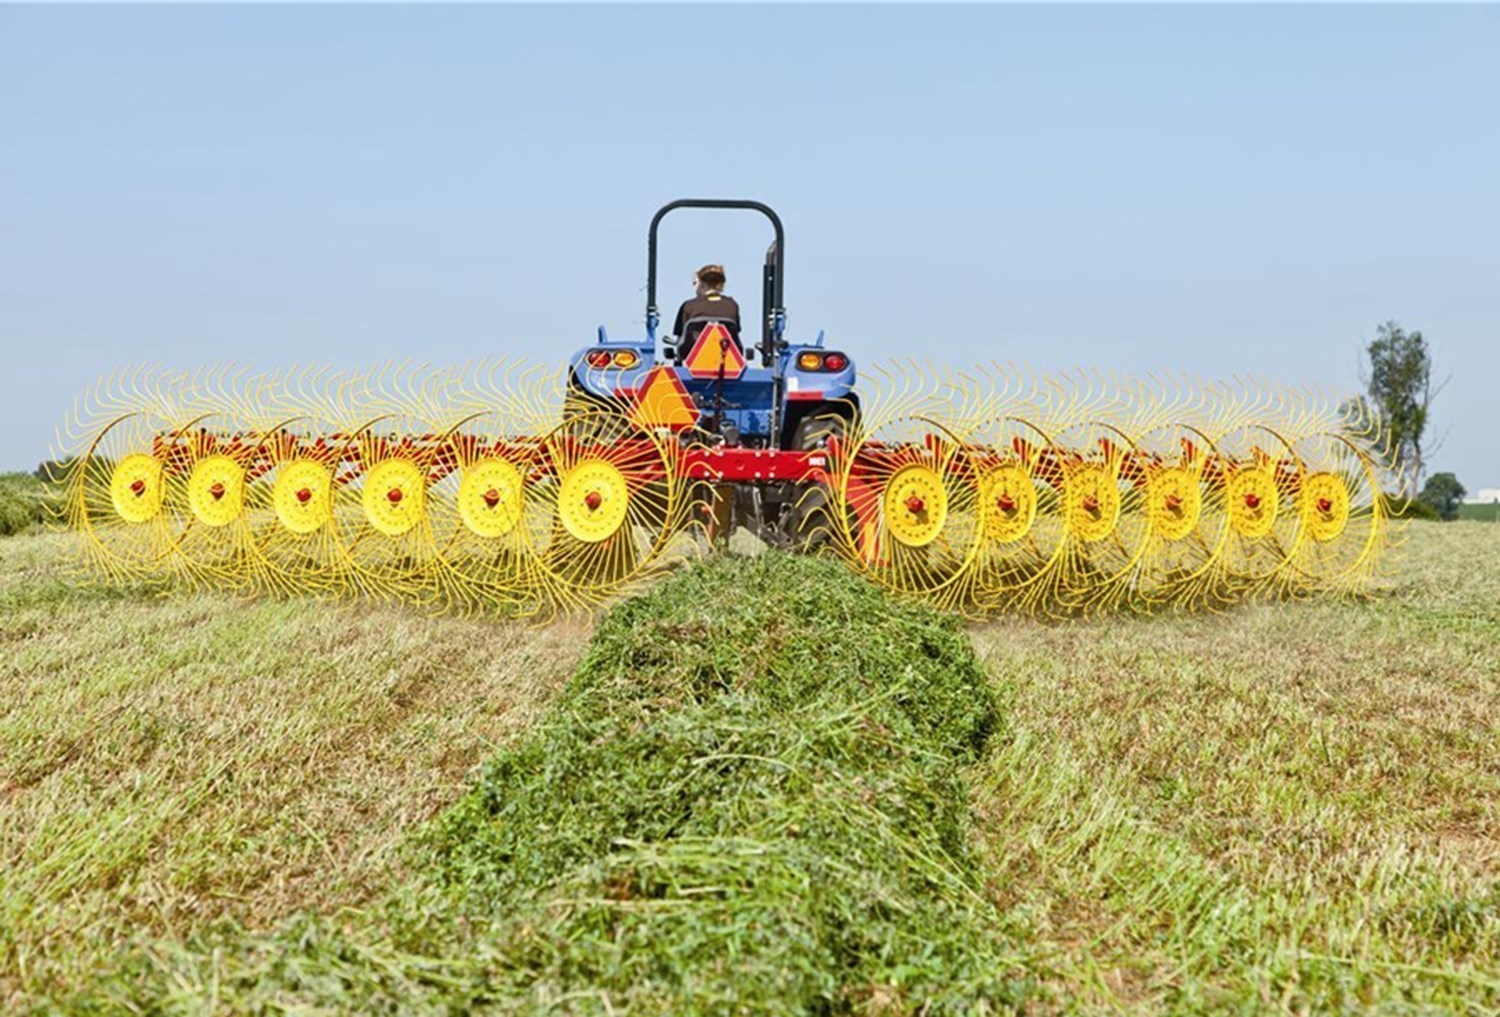 NEW HOLLAND PROCART™ DELUXE CARTED WHEEL RAKE SERIES: